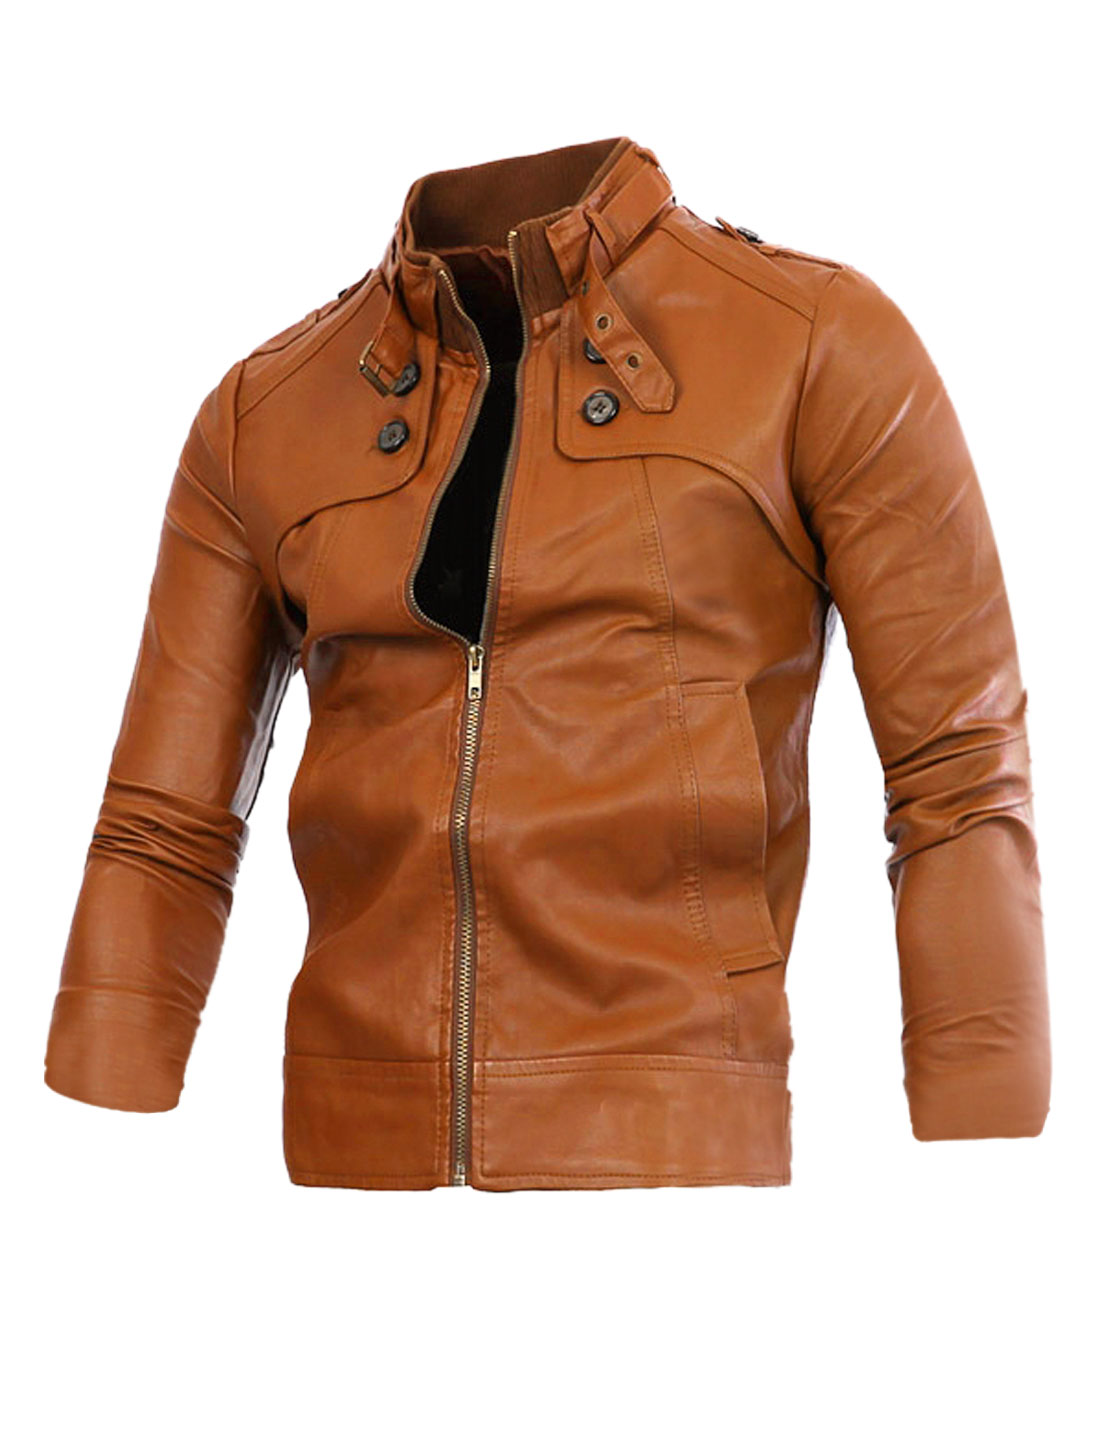 Men Stand Collar Button-tab Epaulets PU Leather Motorcycle Jacket Brown M